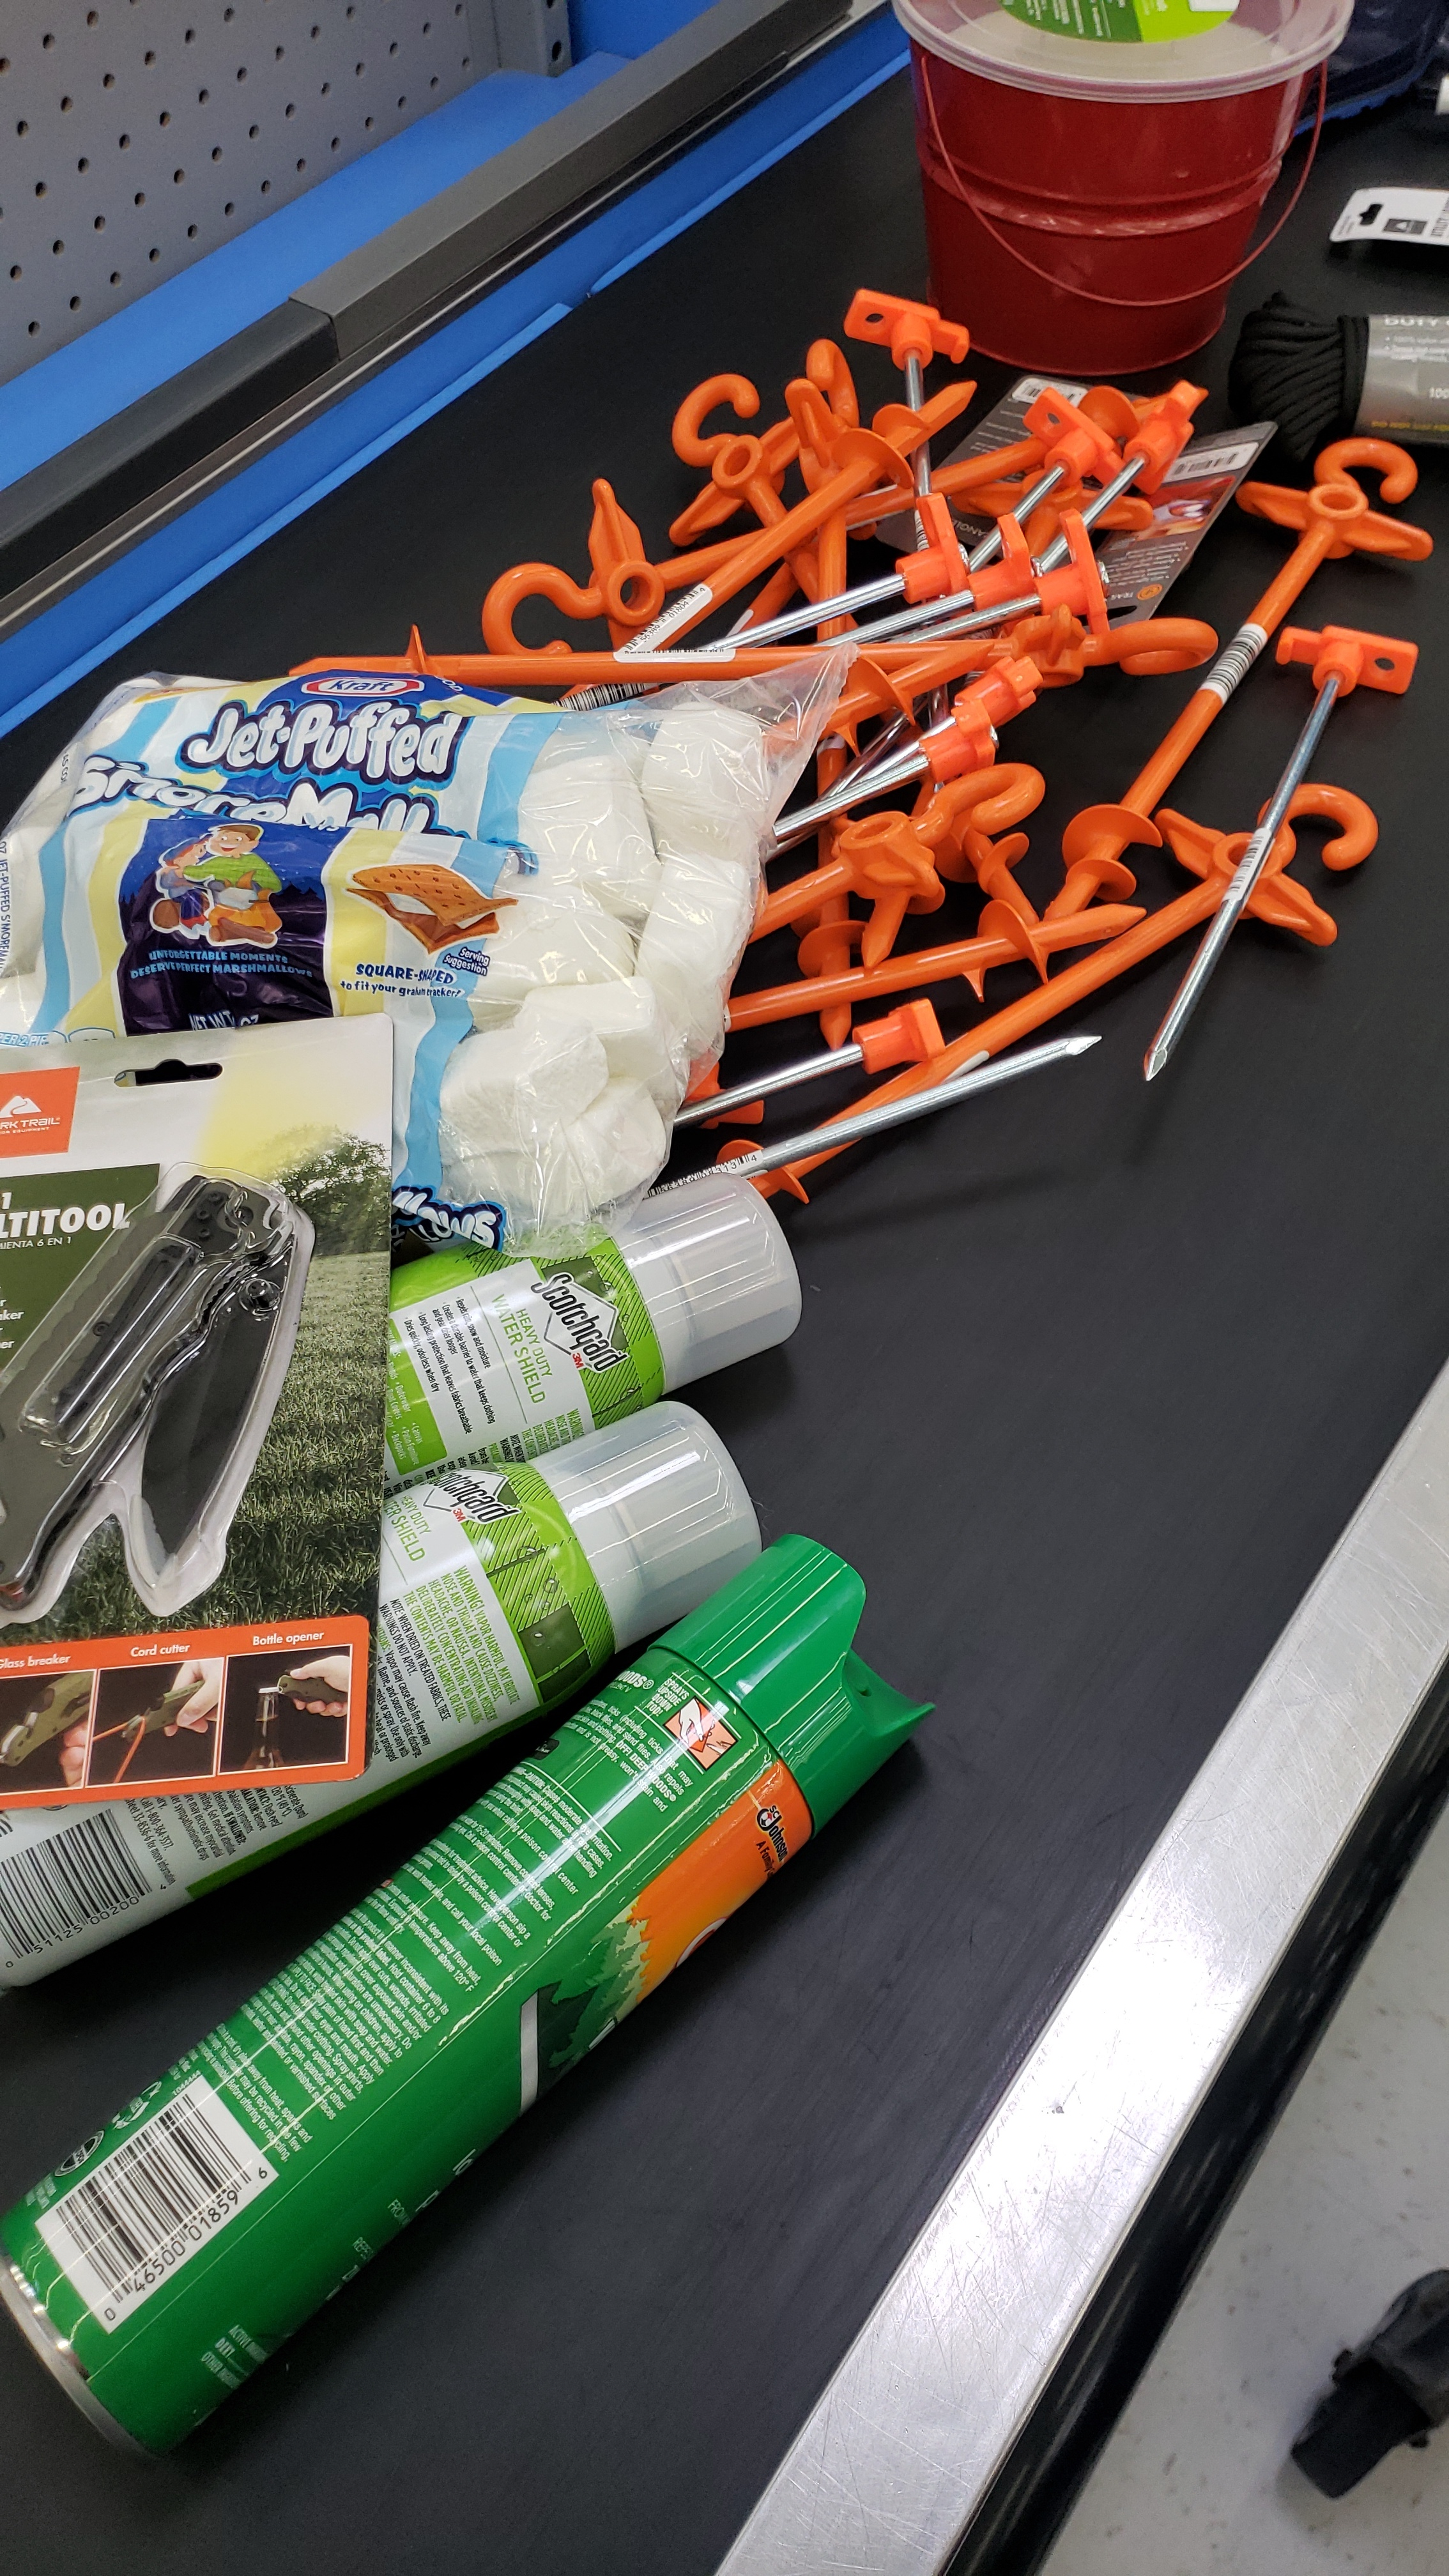 The basics. Storm proof stakes, marshmallows, waterproofing spray, insect repellant, and a spare knife as a spare to my older spare knife.